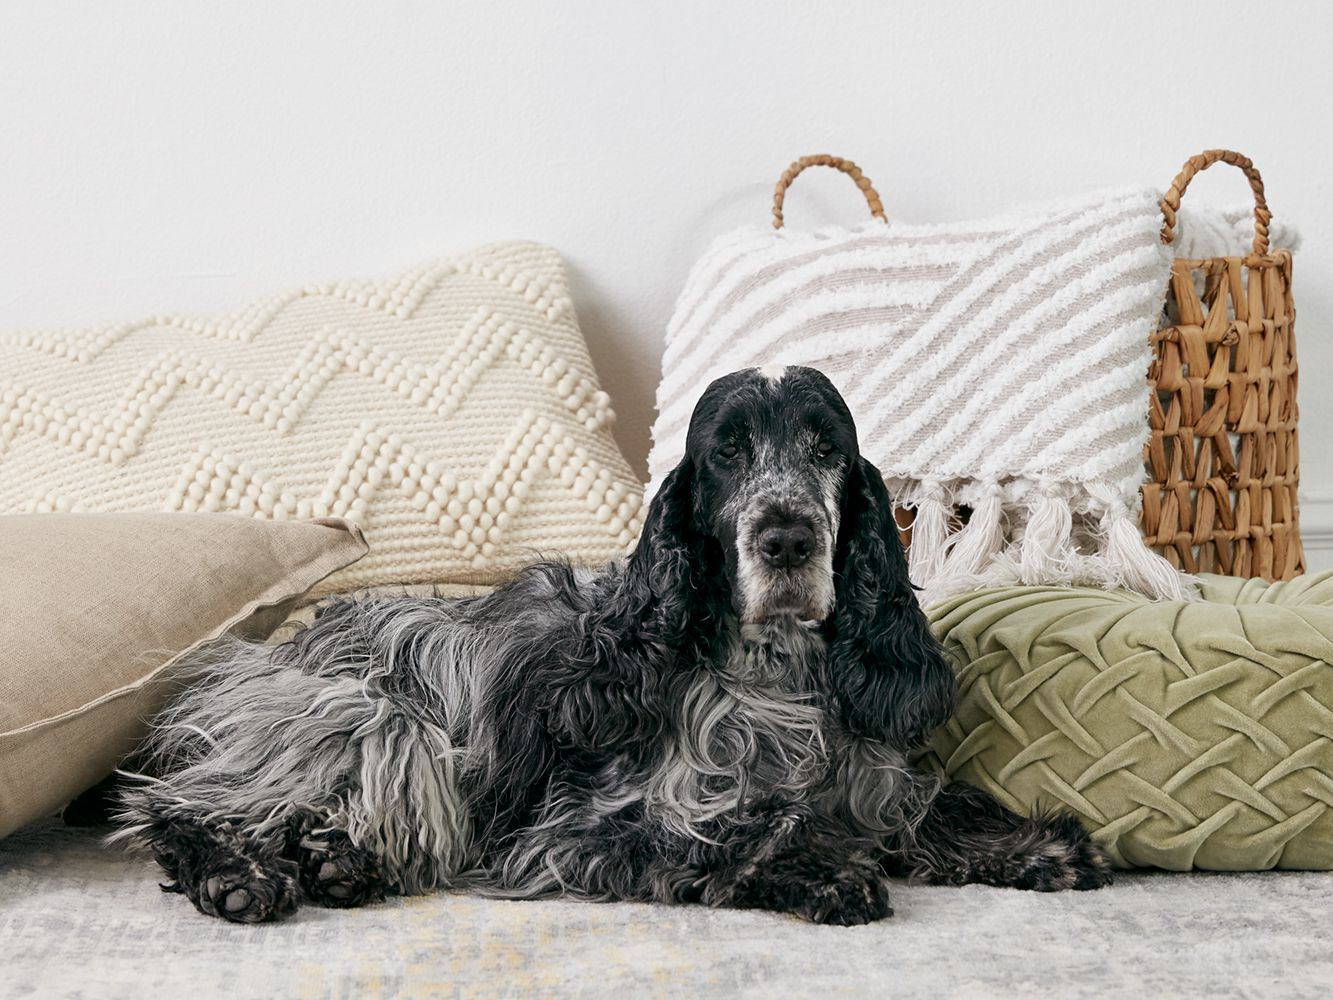 English Cocker Spaniel Full Profile History And Care